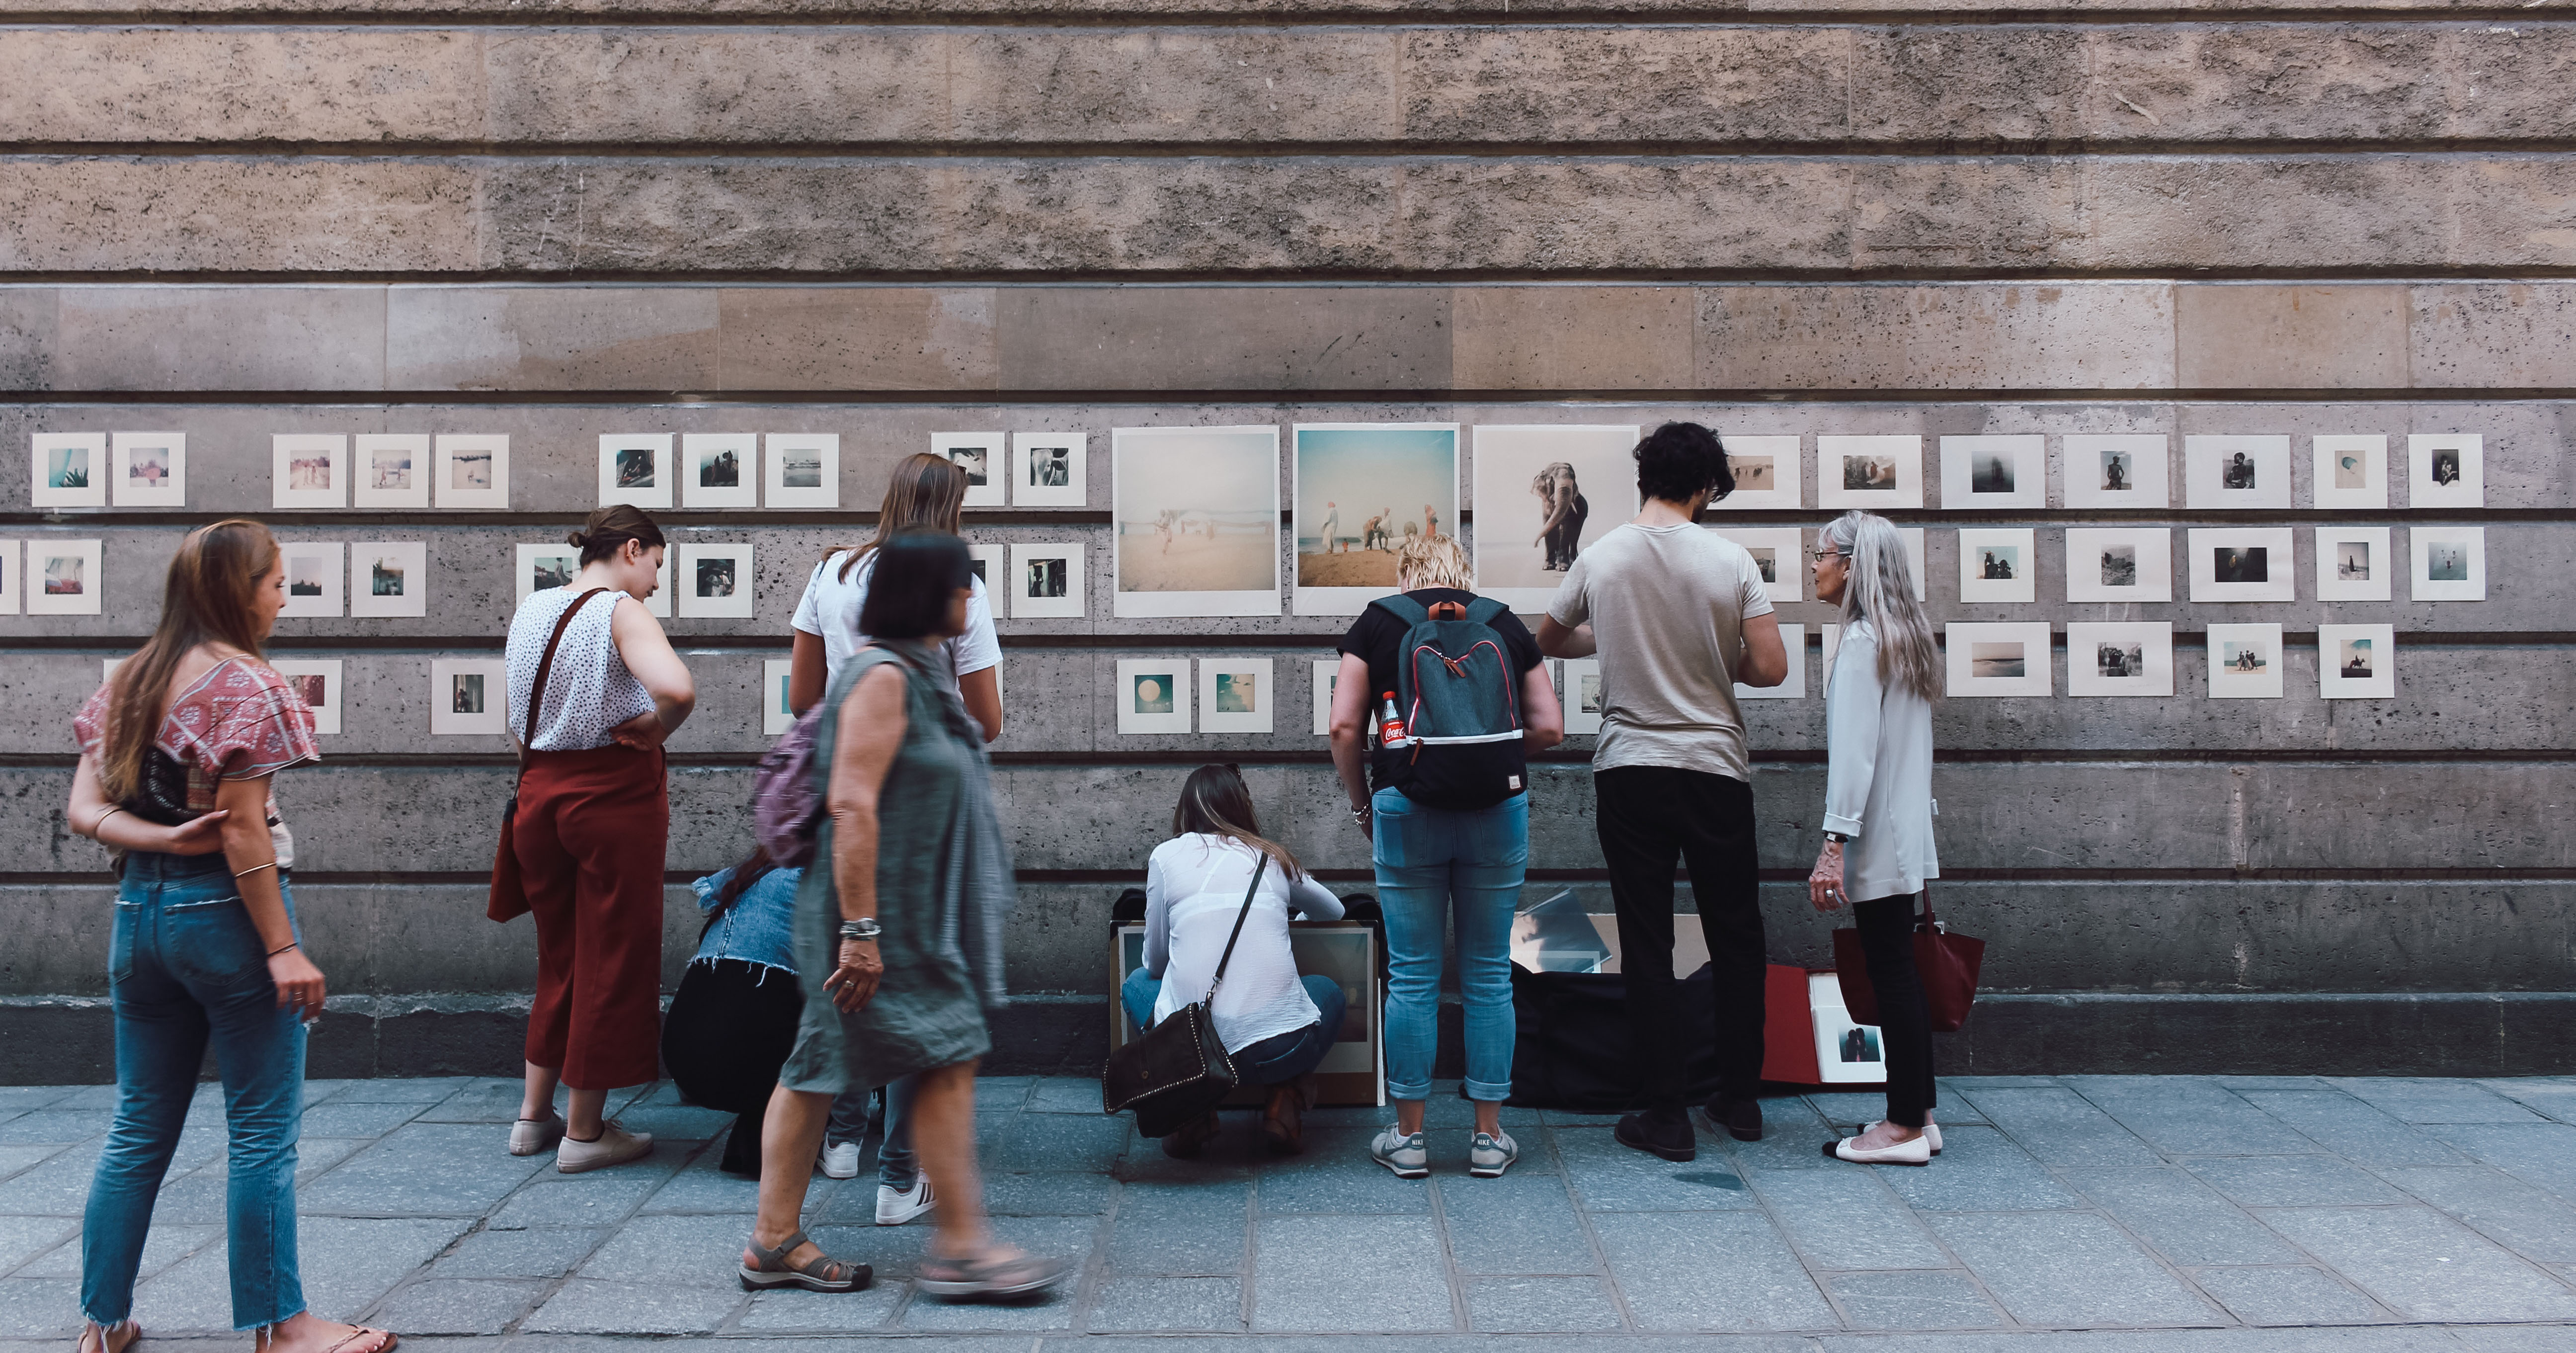 A photovoice exhibition with a group of people all staring at photos pinned to a wall